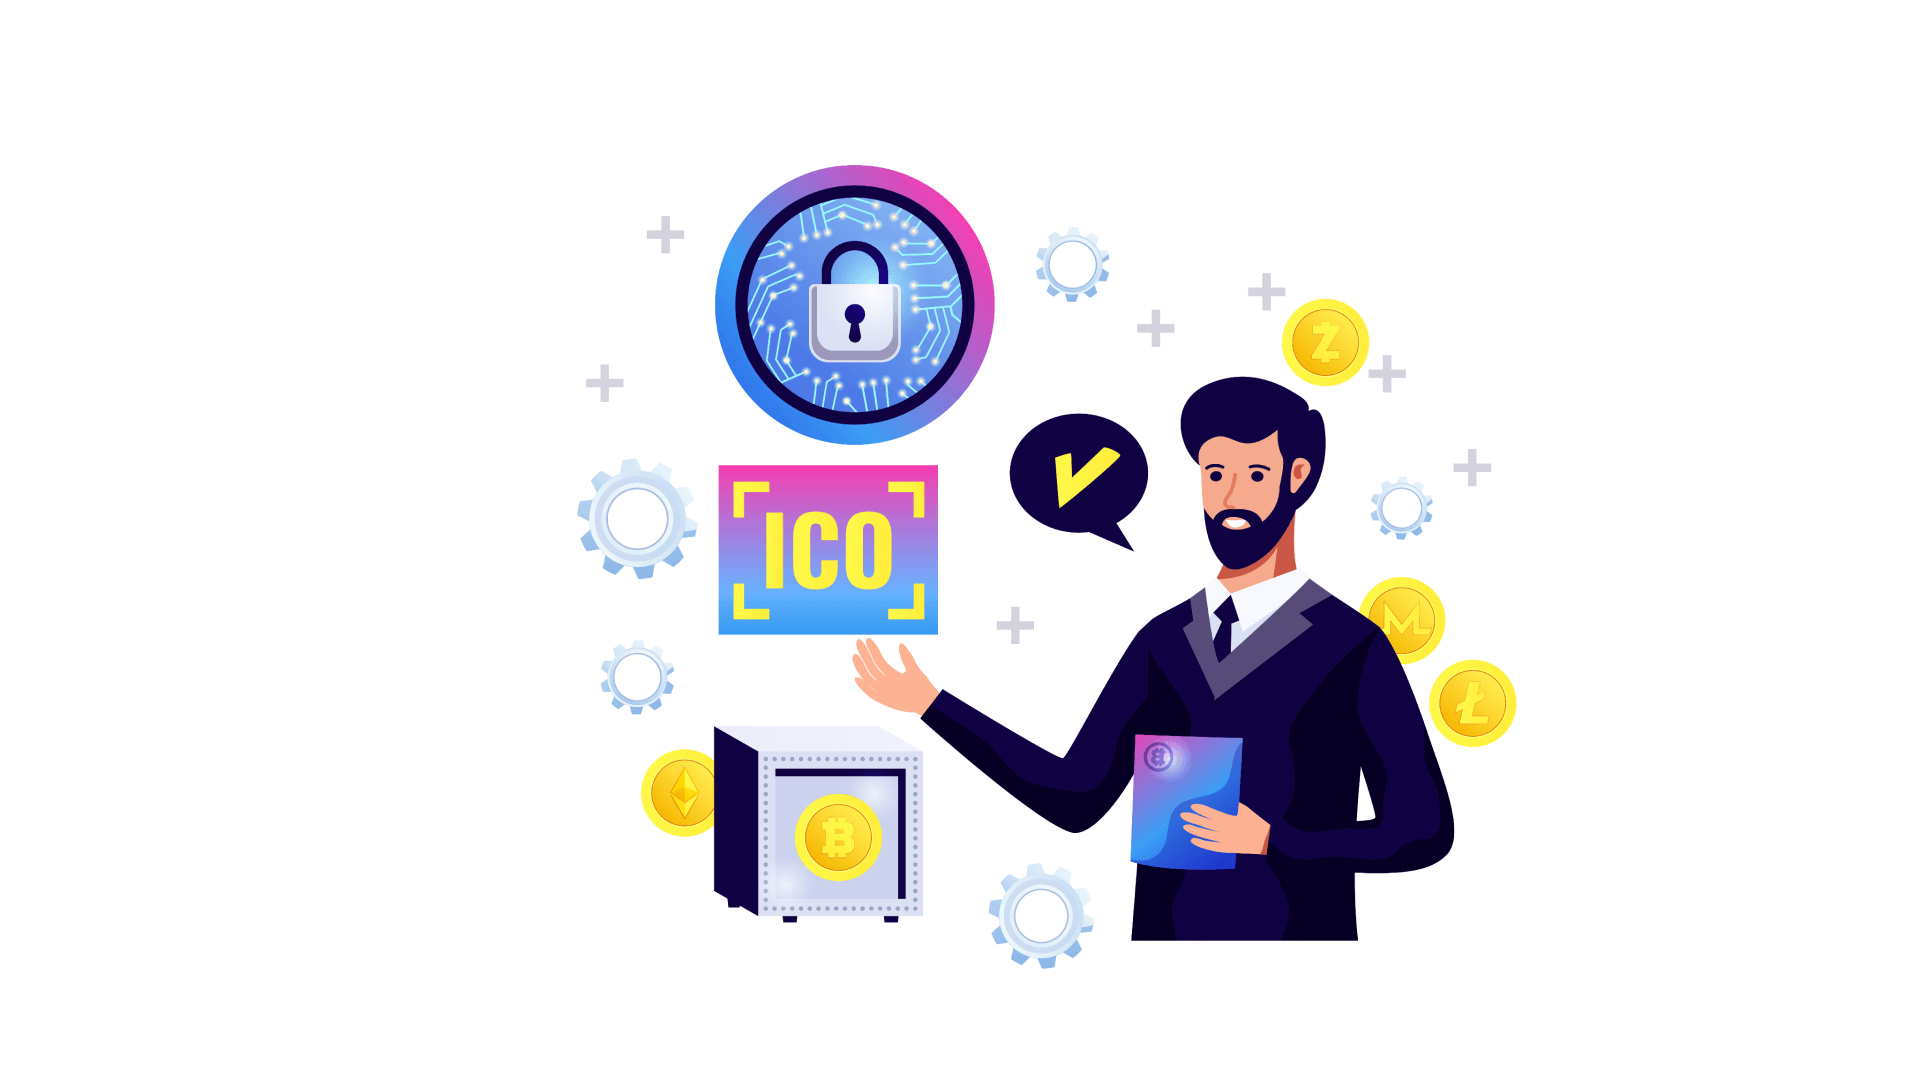 A regular ICO development process is split into 11 stages.